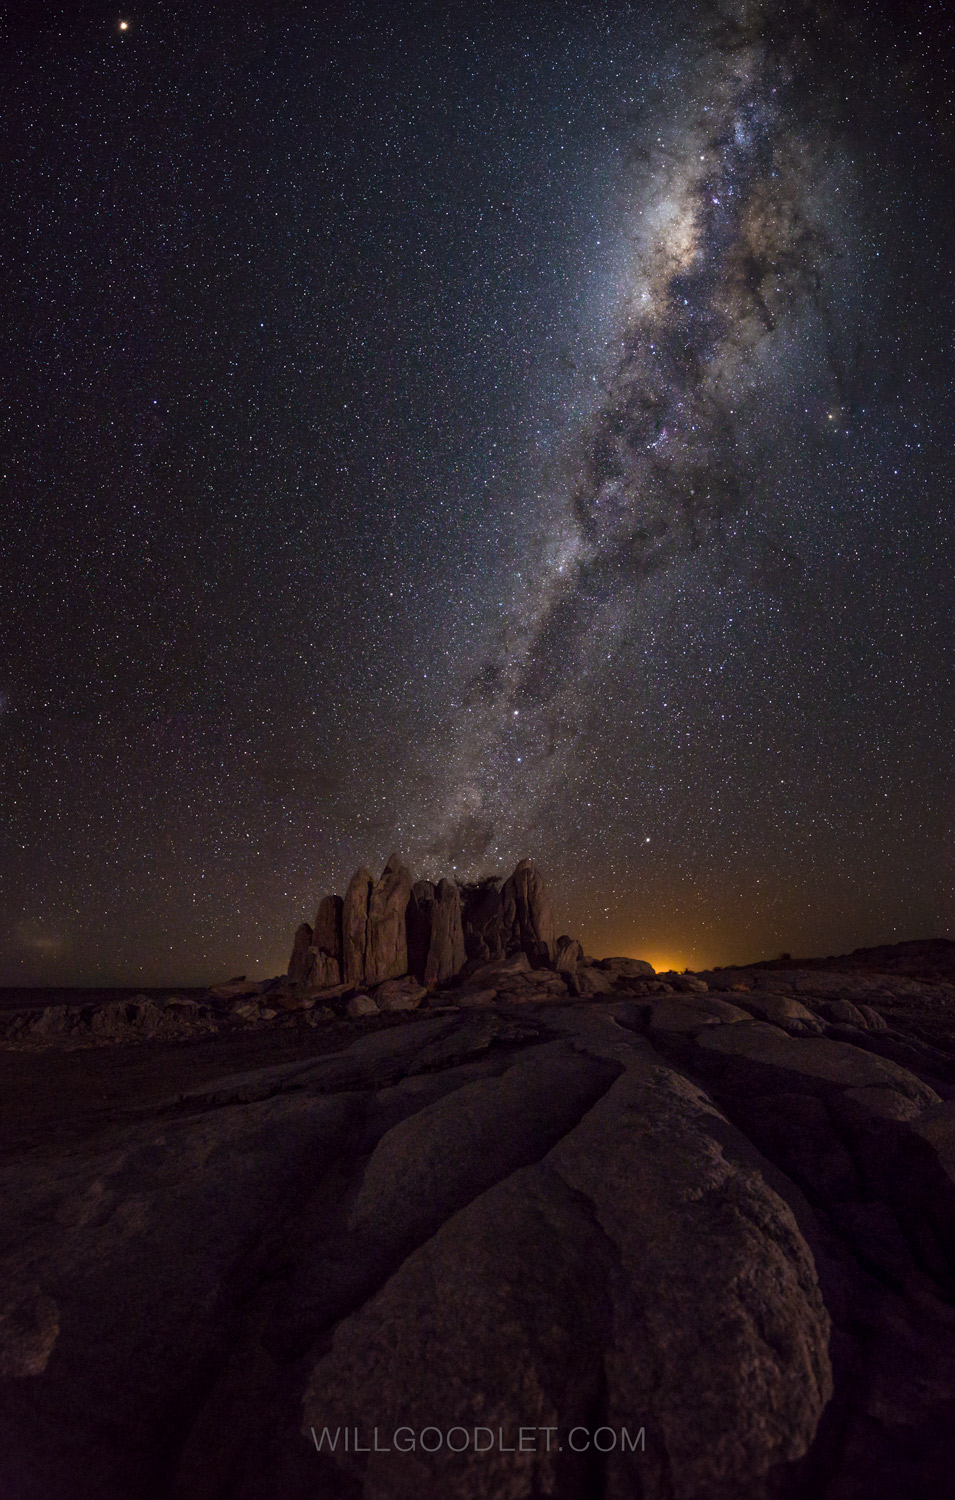 Kubu Rocks, Canon 5D Mark iii + Sigma 14-24 F2.8 Art - ISO 10000, F2.8, 8 Seconds (Stitched stacks of 4)